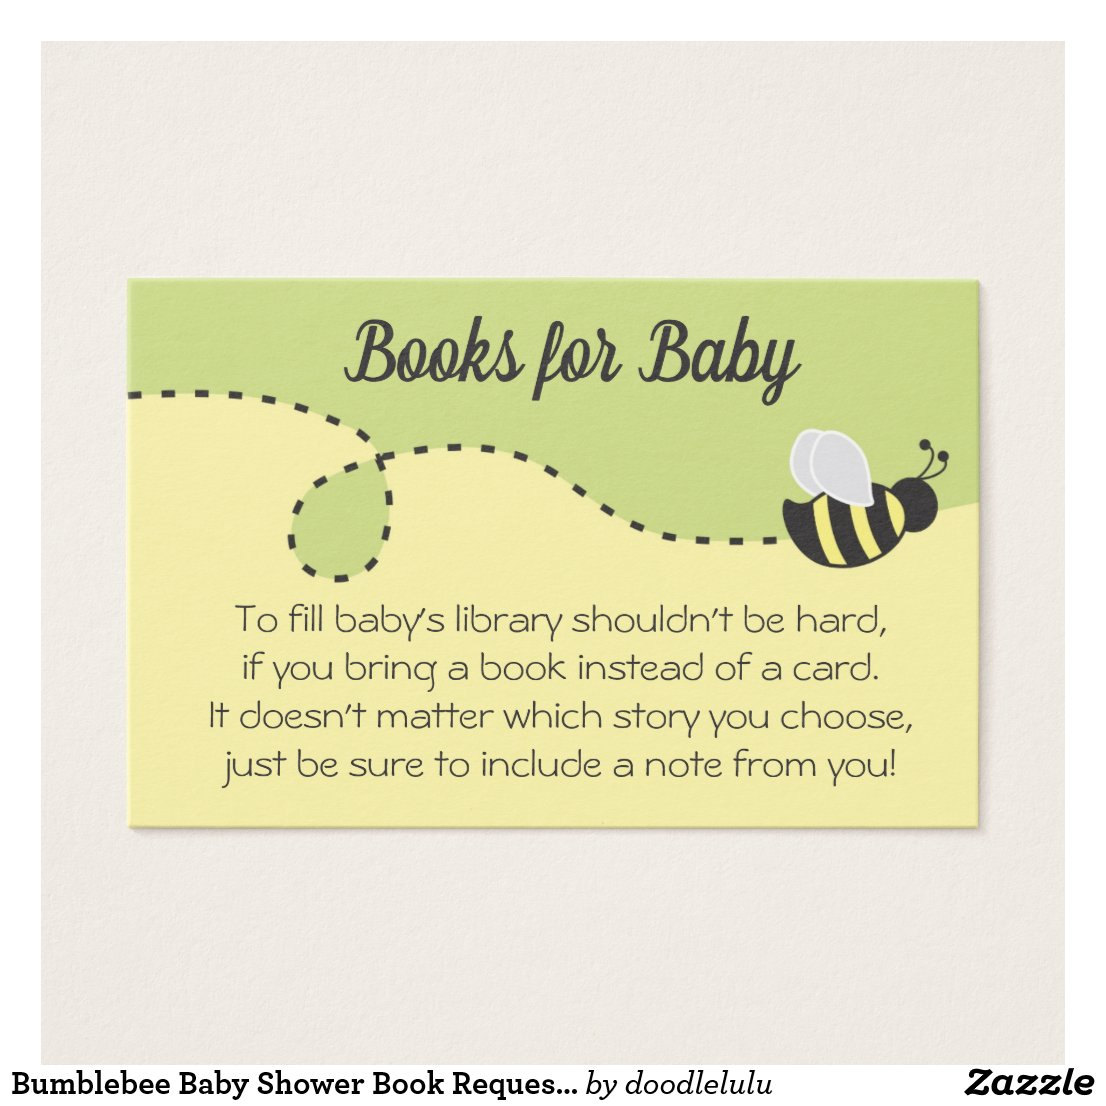 Bumblebee Baby Shower Book Request Card yellow